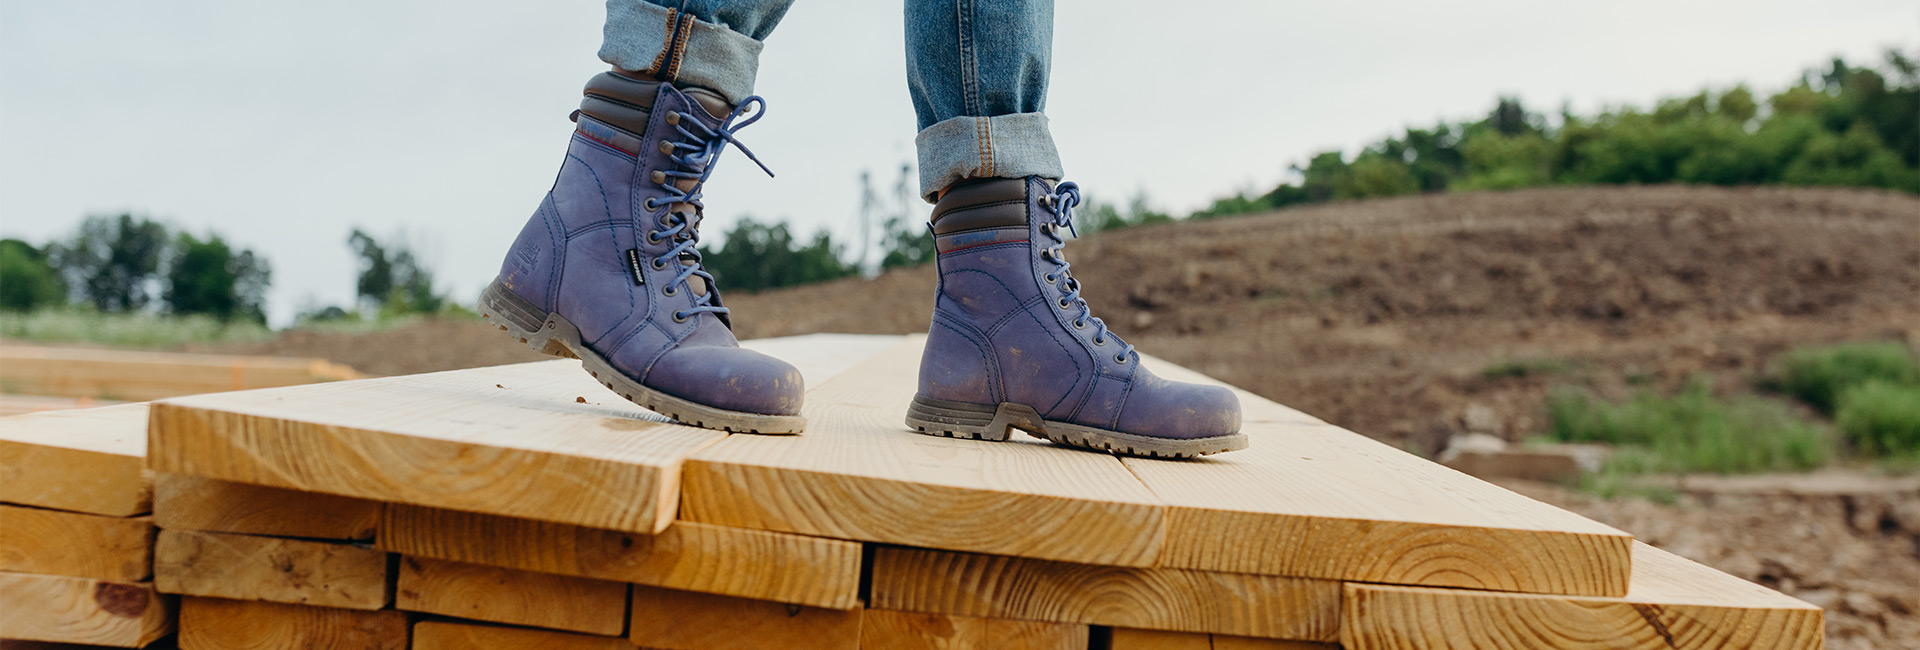 Woman wearing purple CAT workboots on a construction site.